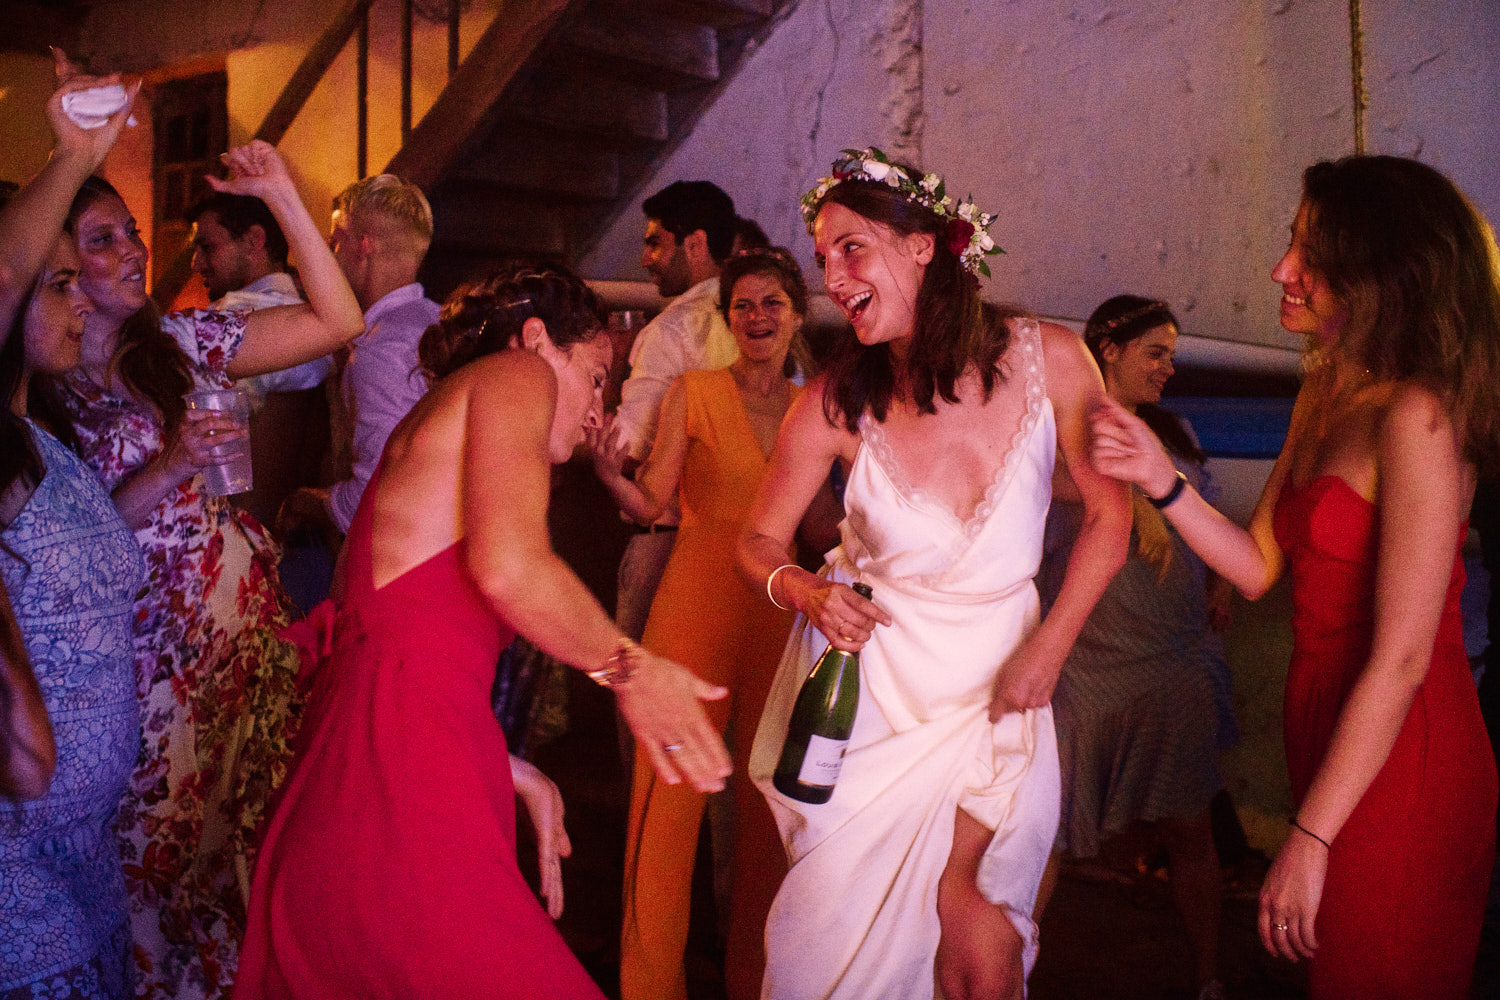 The bride dances with her friends in a barn